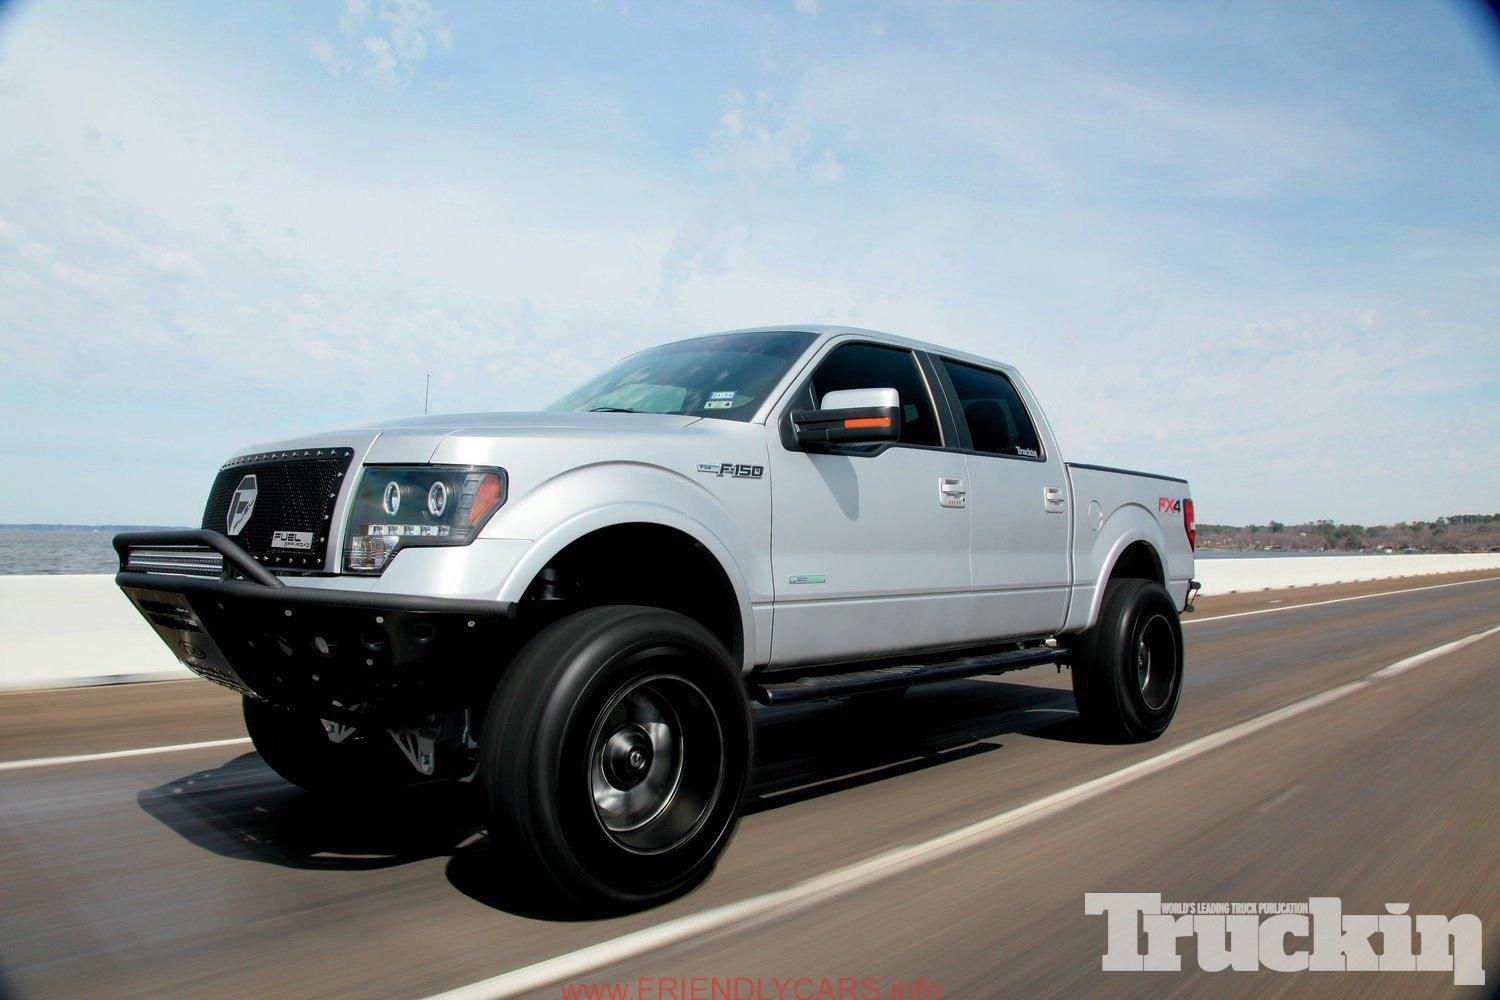 Cool 2013 ford f150 fx4 lifted car images hd 2012 ford f 150 fx4 ecoboost jekyll